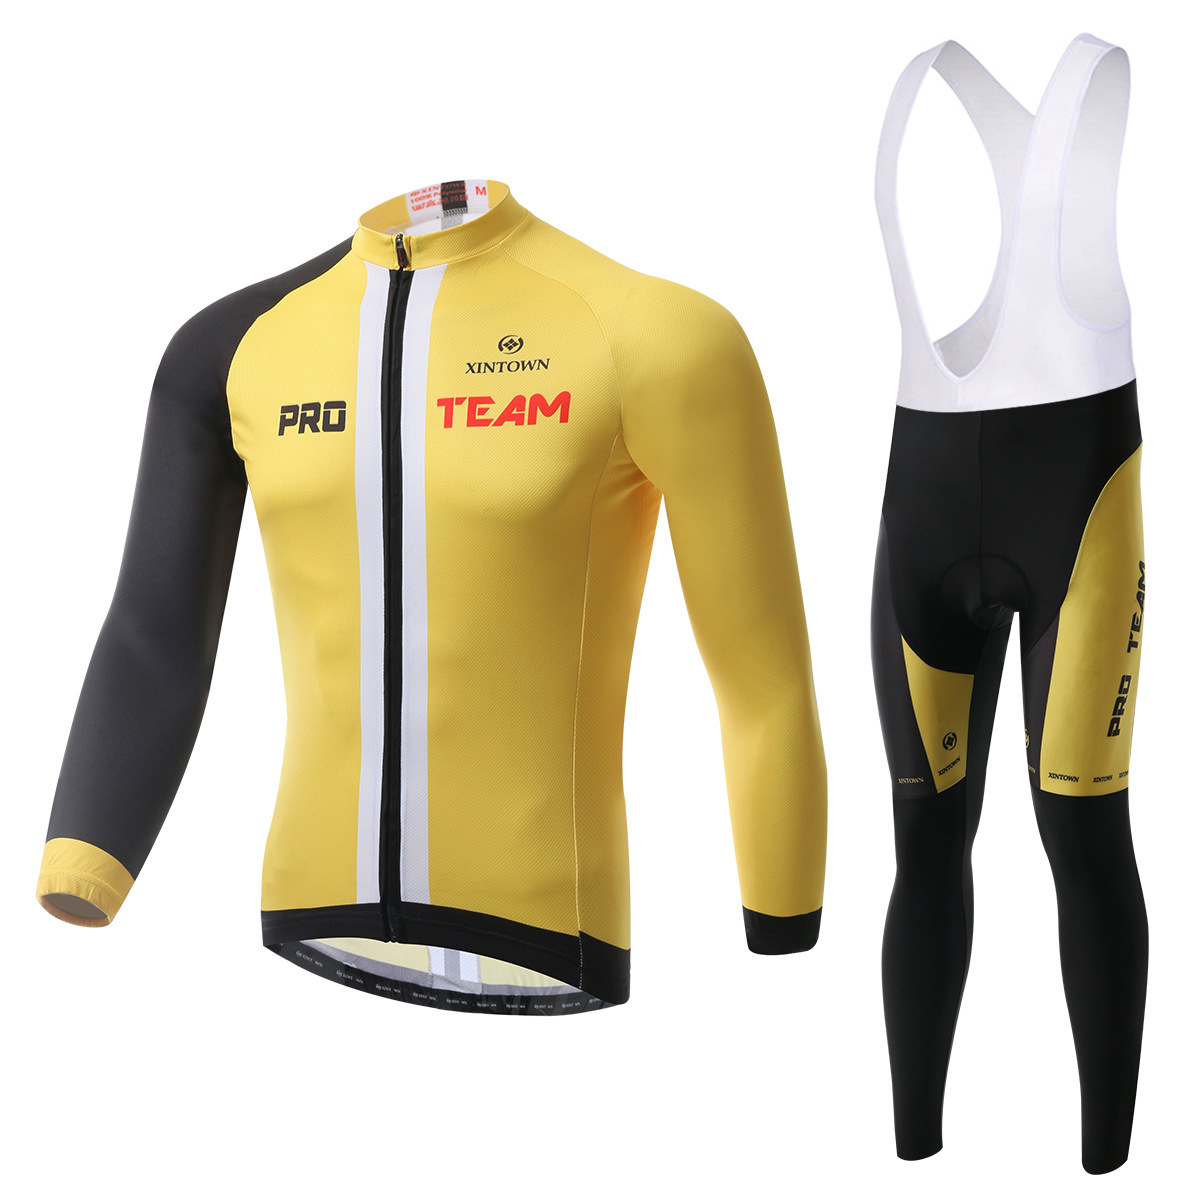 XINTOWN leader yellow bike riding jersey strap long-sleeved suit wear bicycle suits fleece wind warm functional underwear